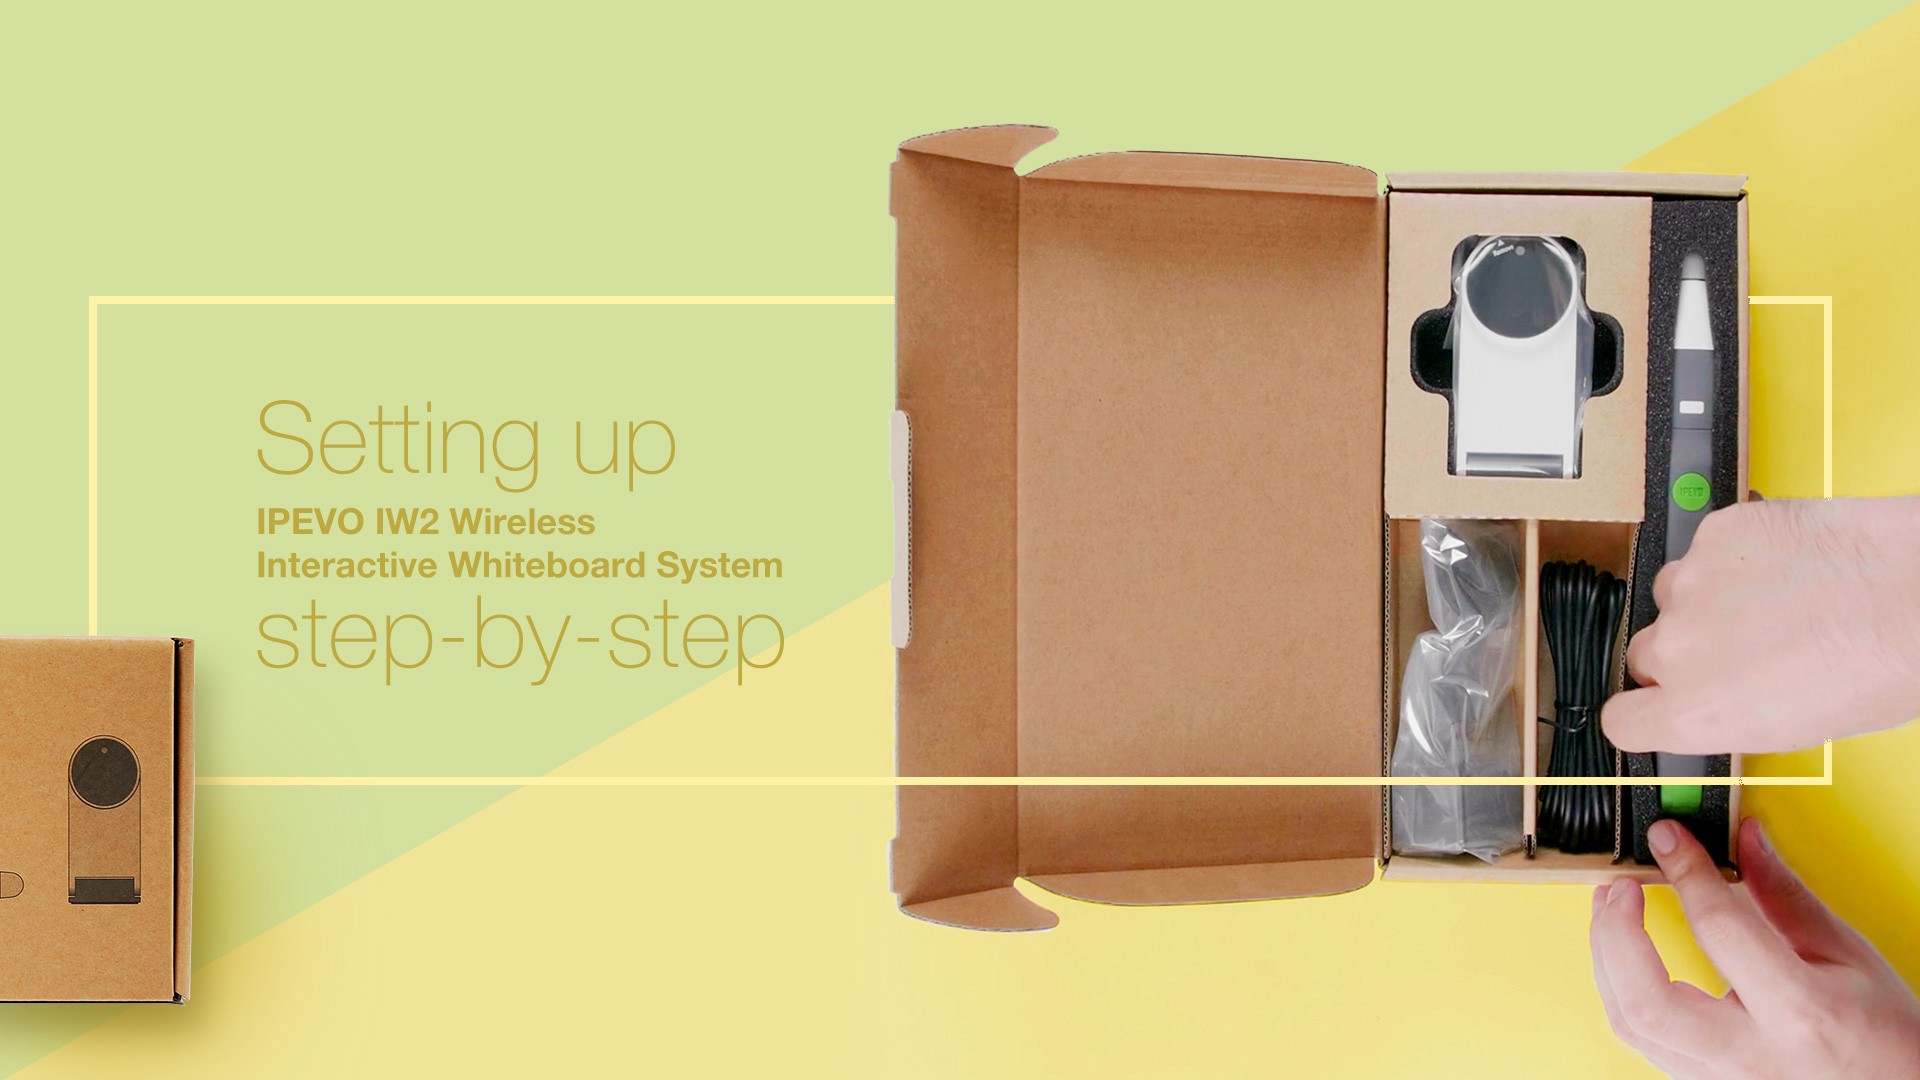 Setting up IPEVO IW2 Wireless Interactive Whiteboard System step-by-step